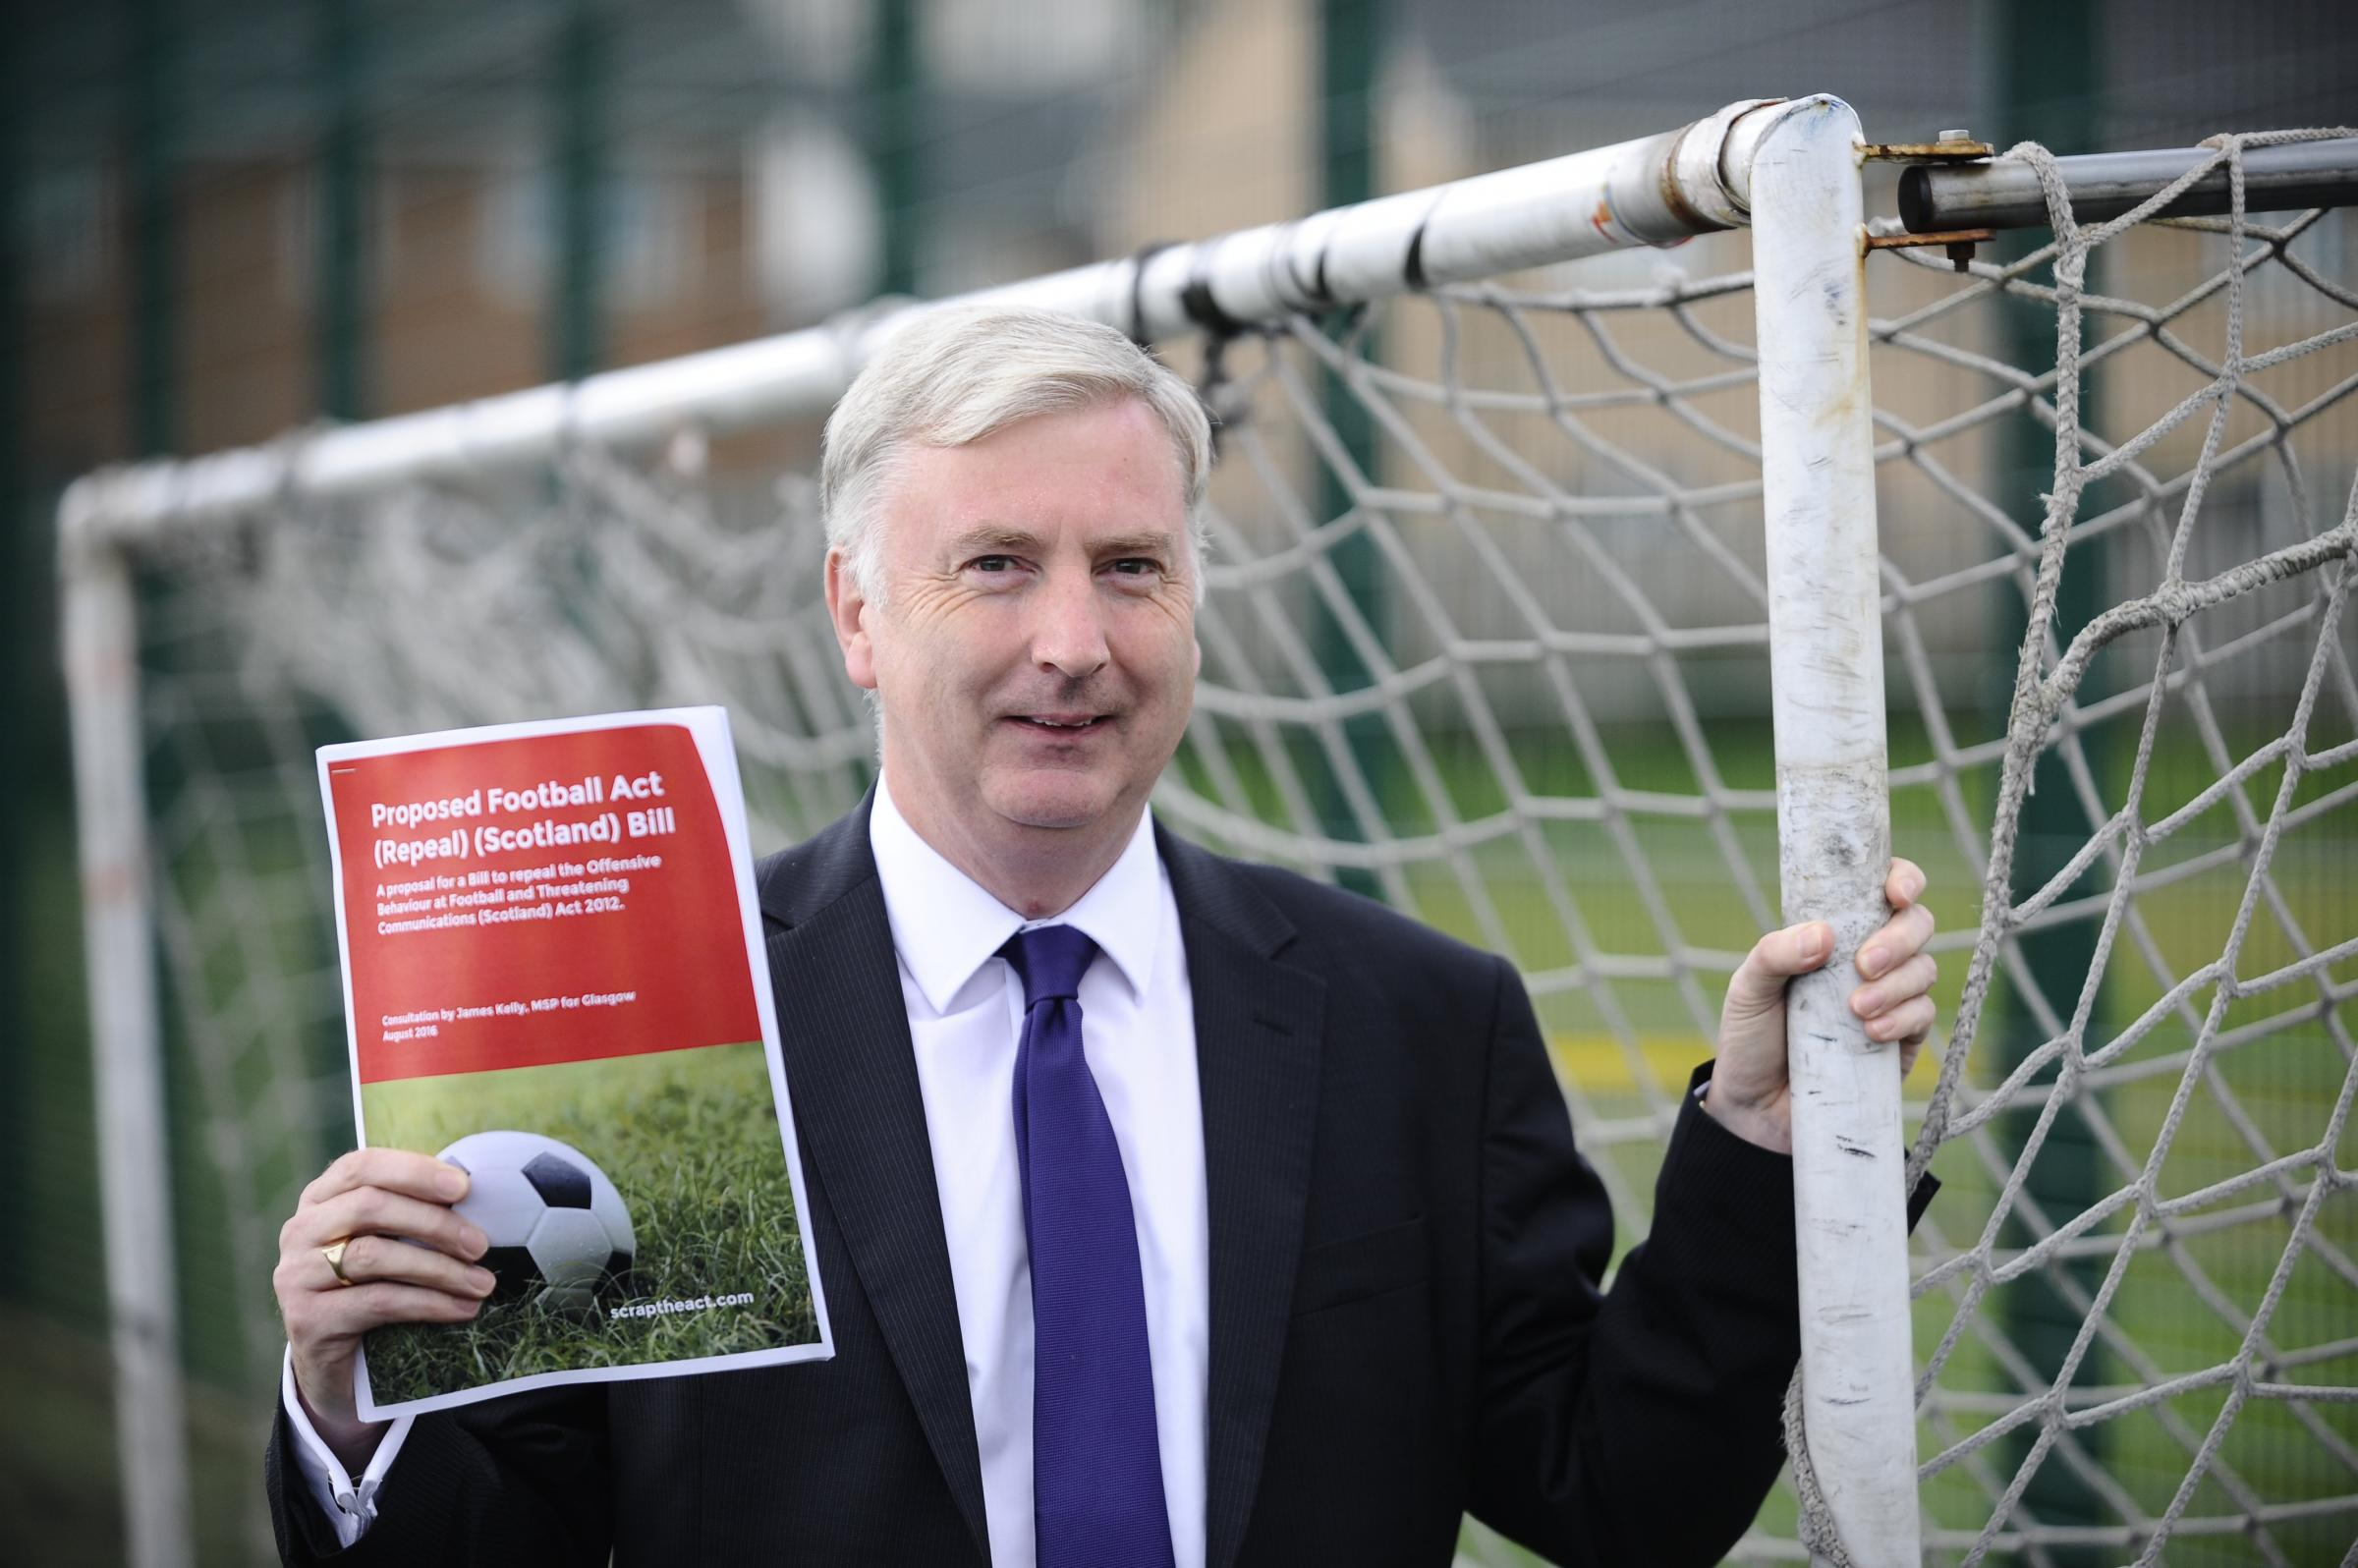 Scottish Labour MSP James Kelly launched a bill to scrap the Offensive Behaviour at Football Act. Photograph: Jamie Simpson